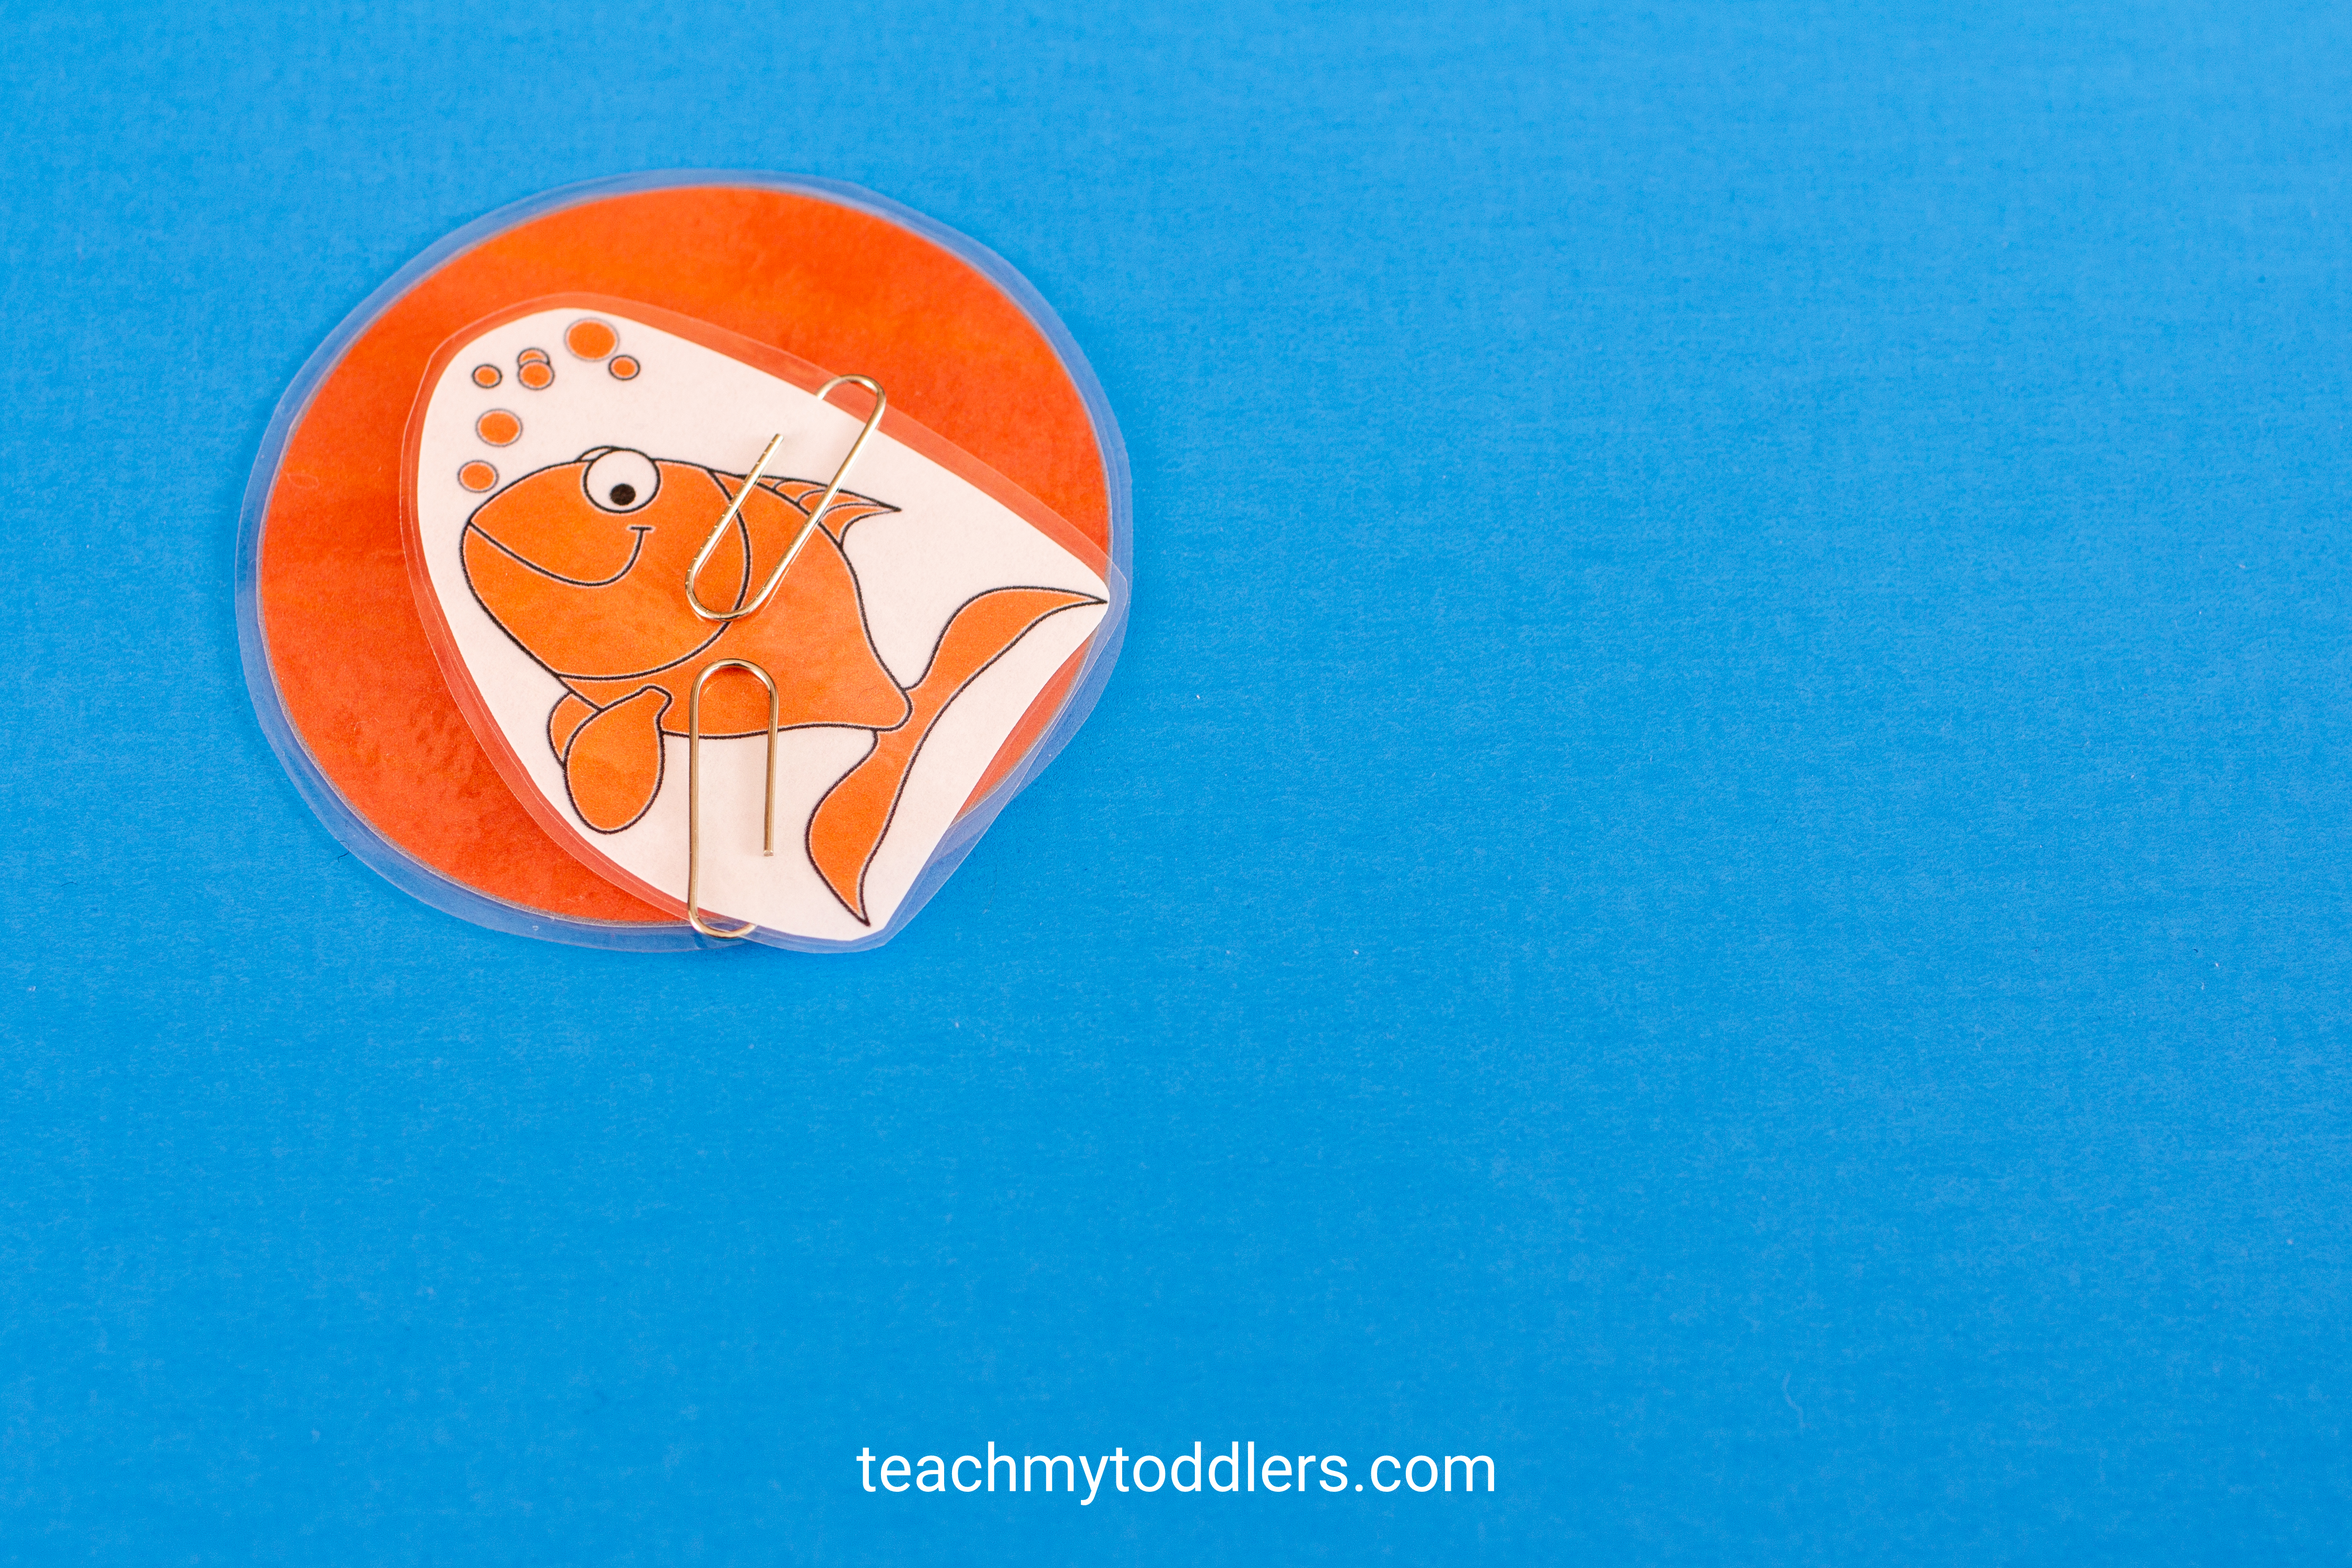 This orange fish is a great way to teach your toddlers colors